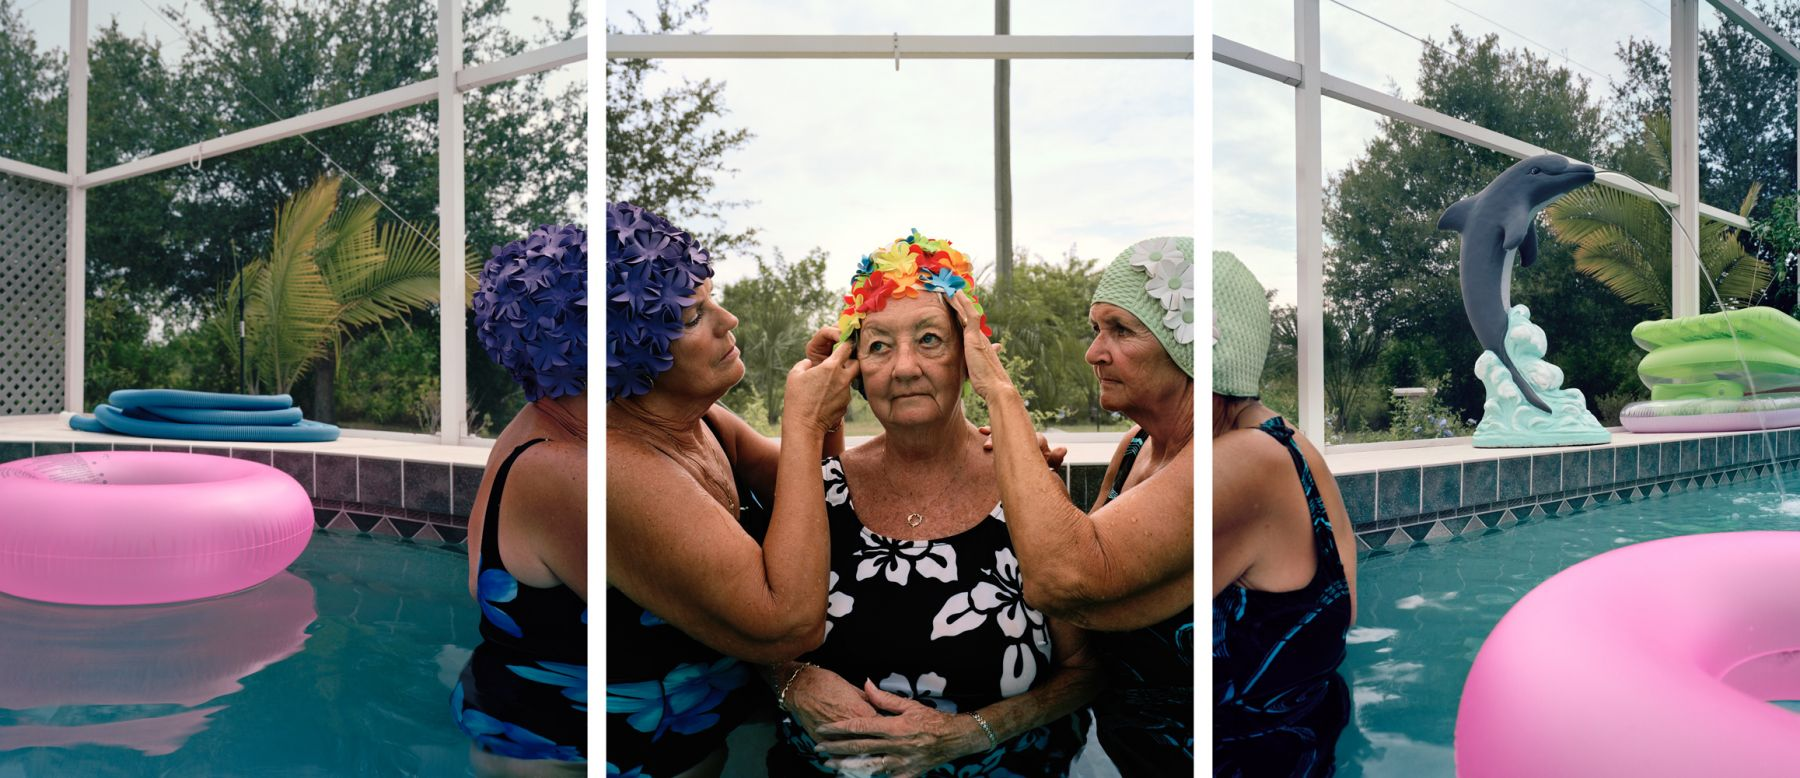 Doting on Jane, 2007. Three-panel archival pigment print, available as 24 x 60 or 40 x 90 inches.